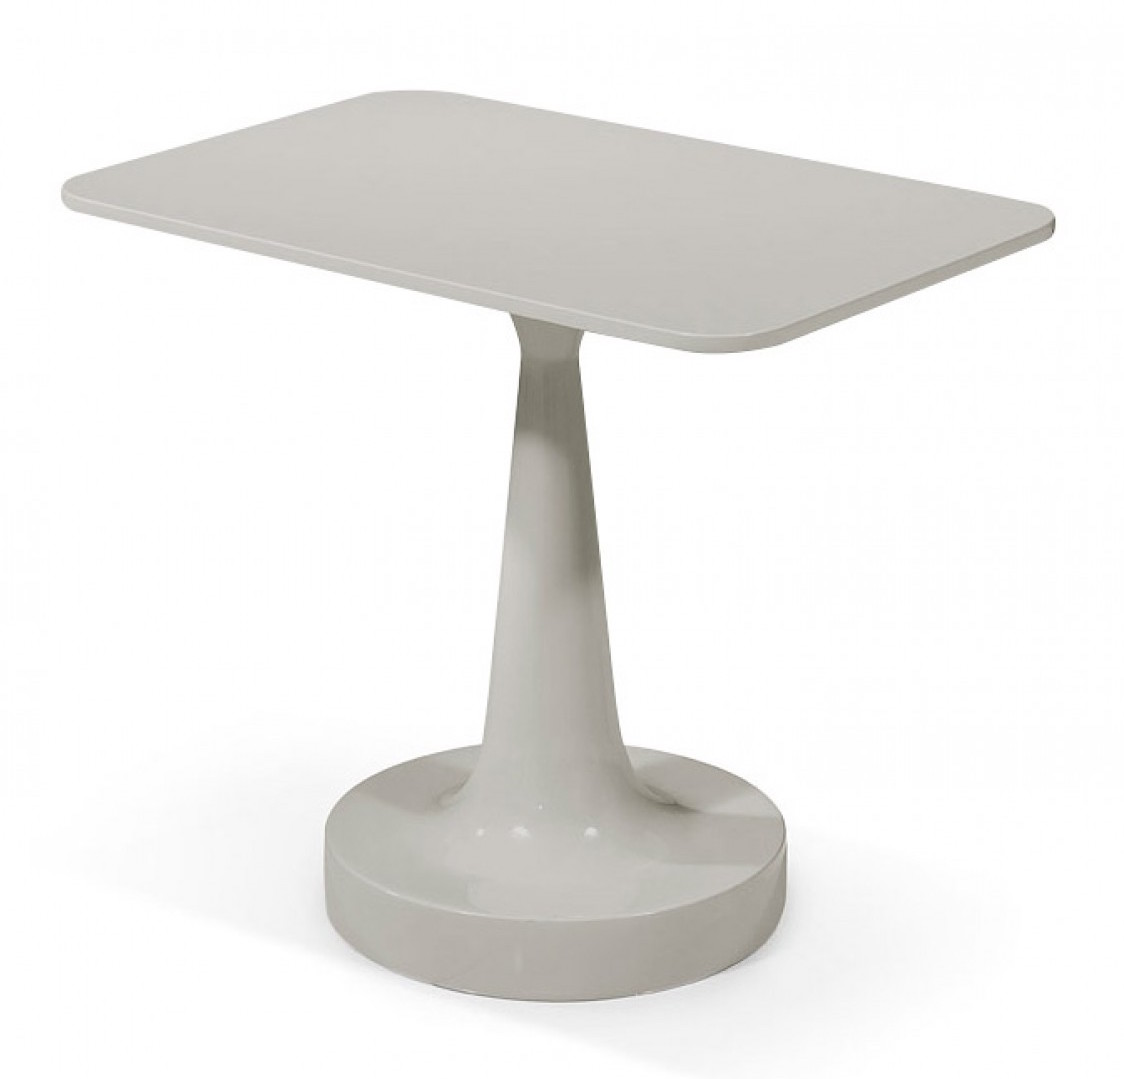 flow-side-table-gray.jpg